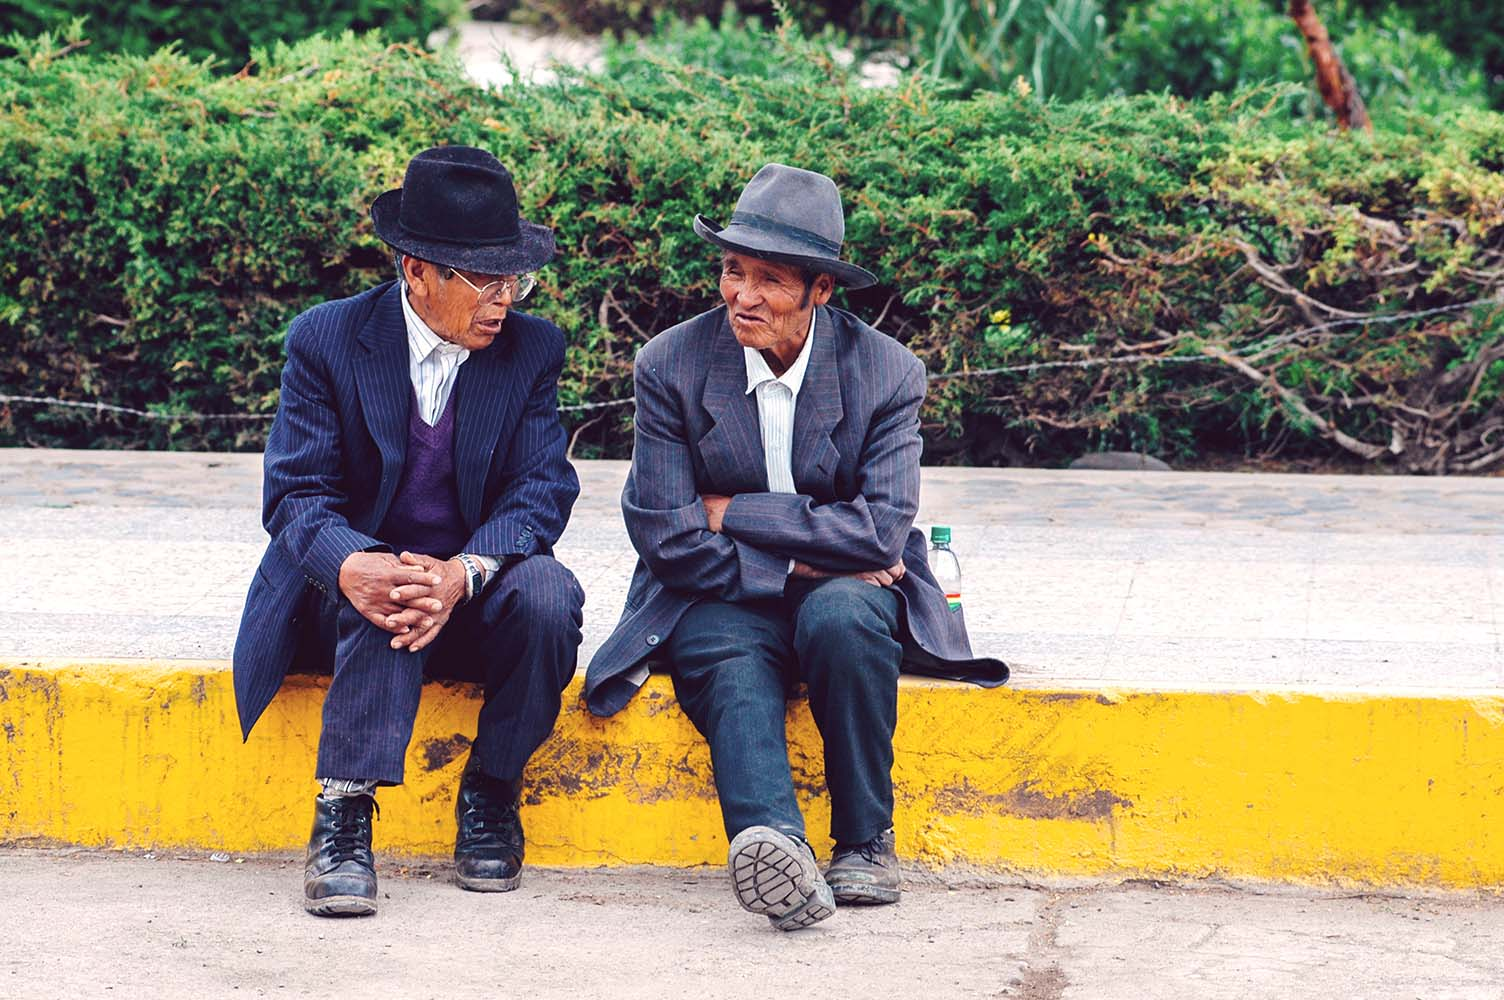 AREQUIPA, PERU - FEBRUARY 04: Unidentified locals on the main pl